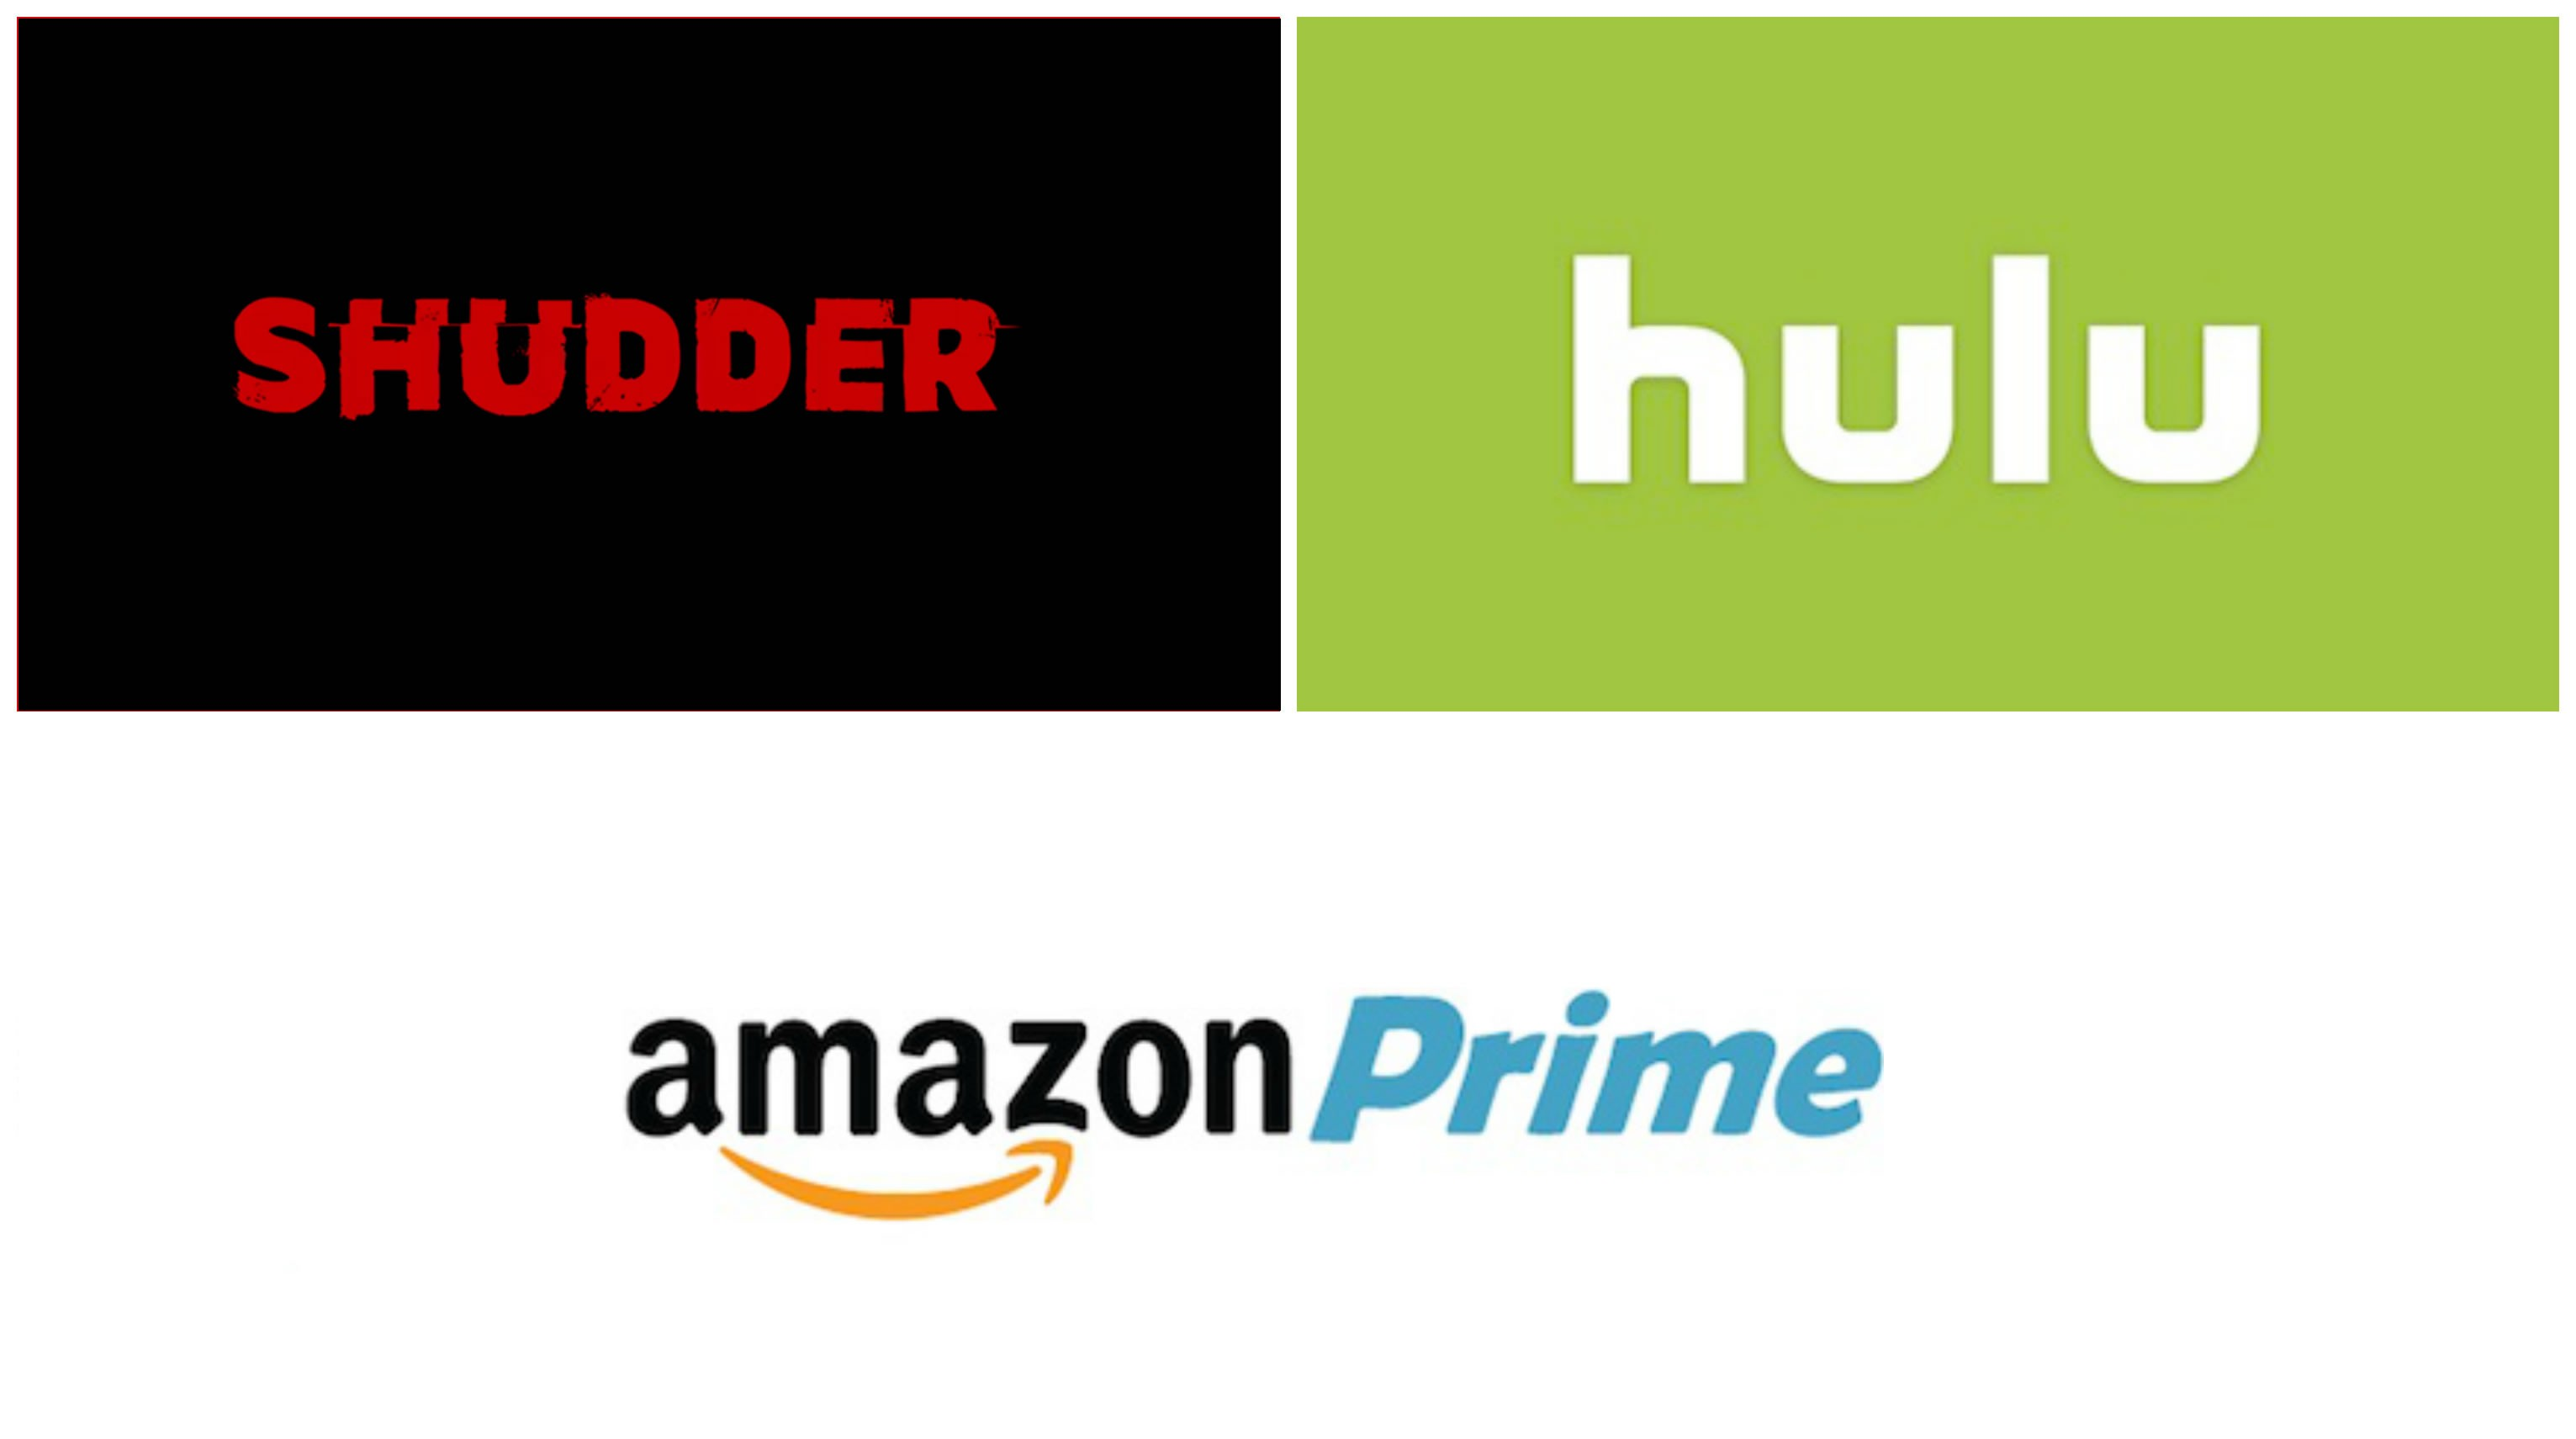 New This Week To Hulu, Amazon Prime, And Shudder? Movies, TV, And Originals